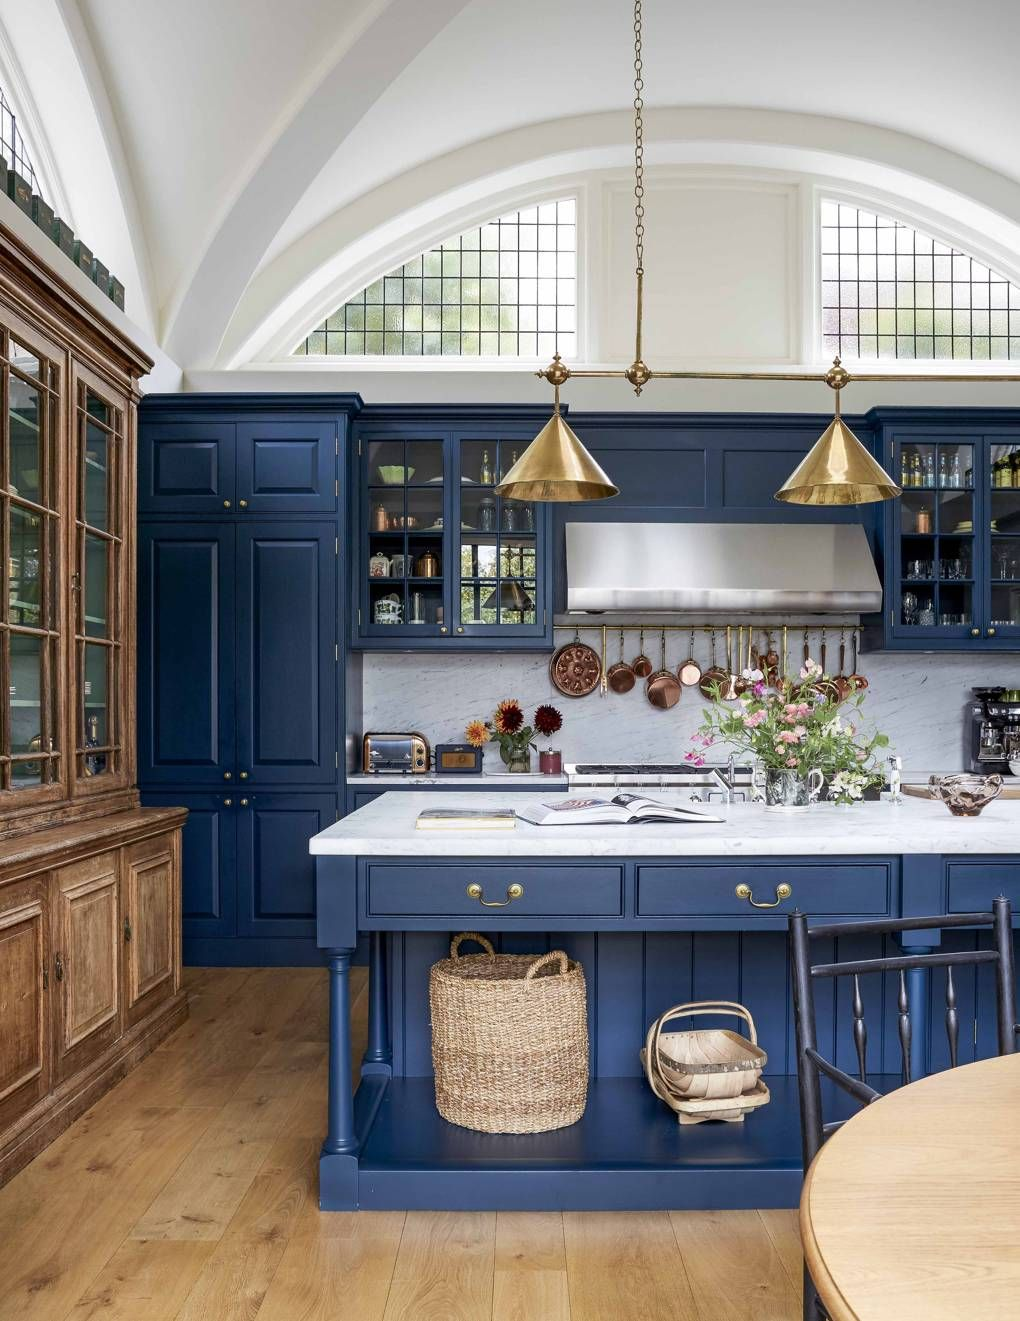 The Duke And Duchess Of Cambridge S Interior Designer Shares His Talent For Designing Beautiful Spaces That Home Remodeling Kitchen Design Kitchen Inspirations